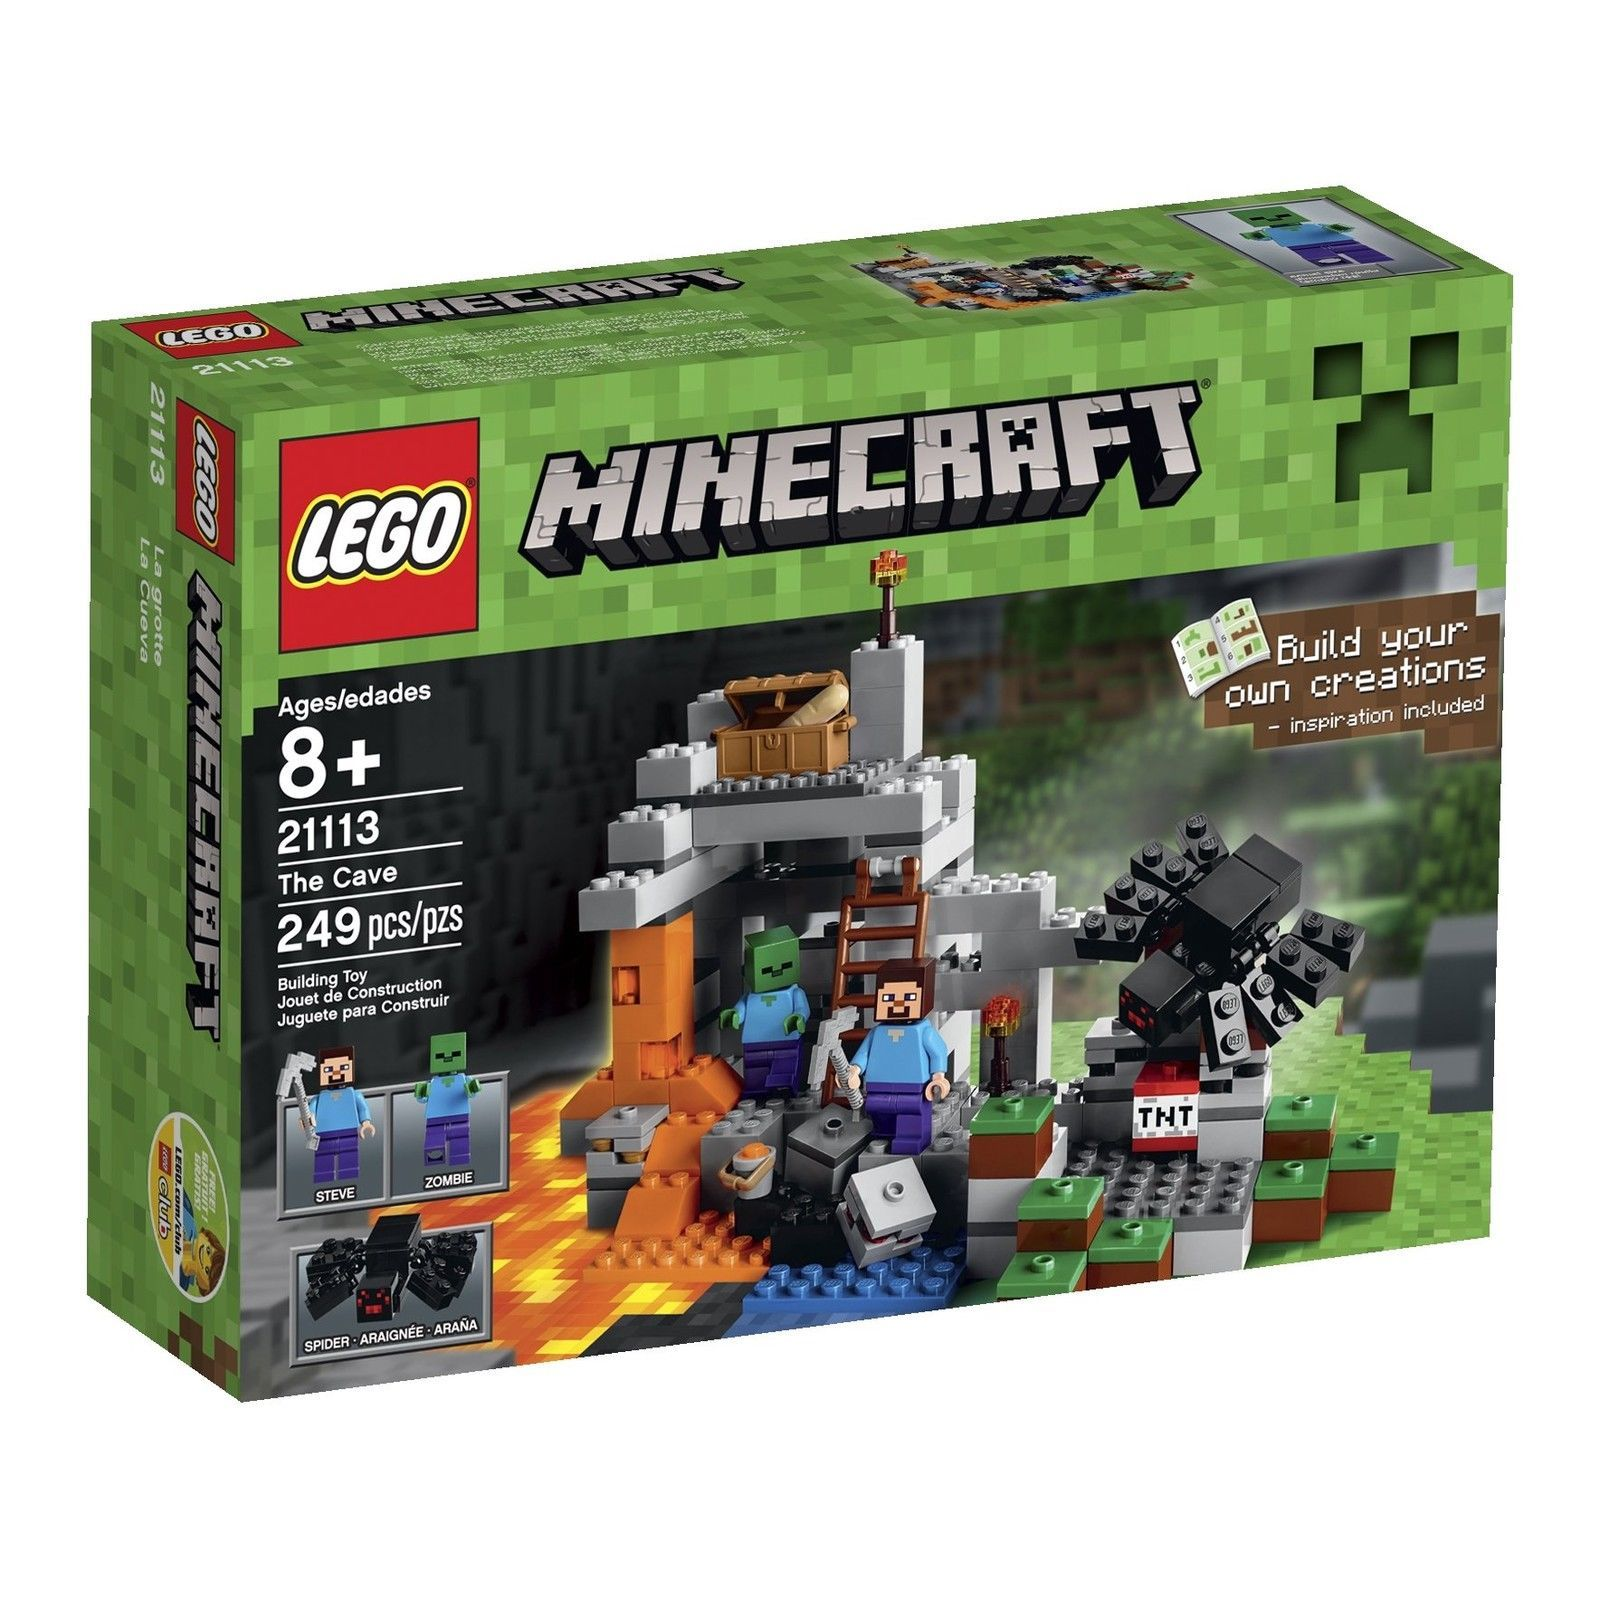 LEGO Minecraft The Cave 21113 [New] Building Toy Set